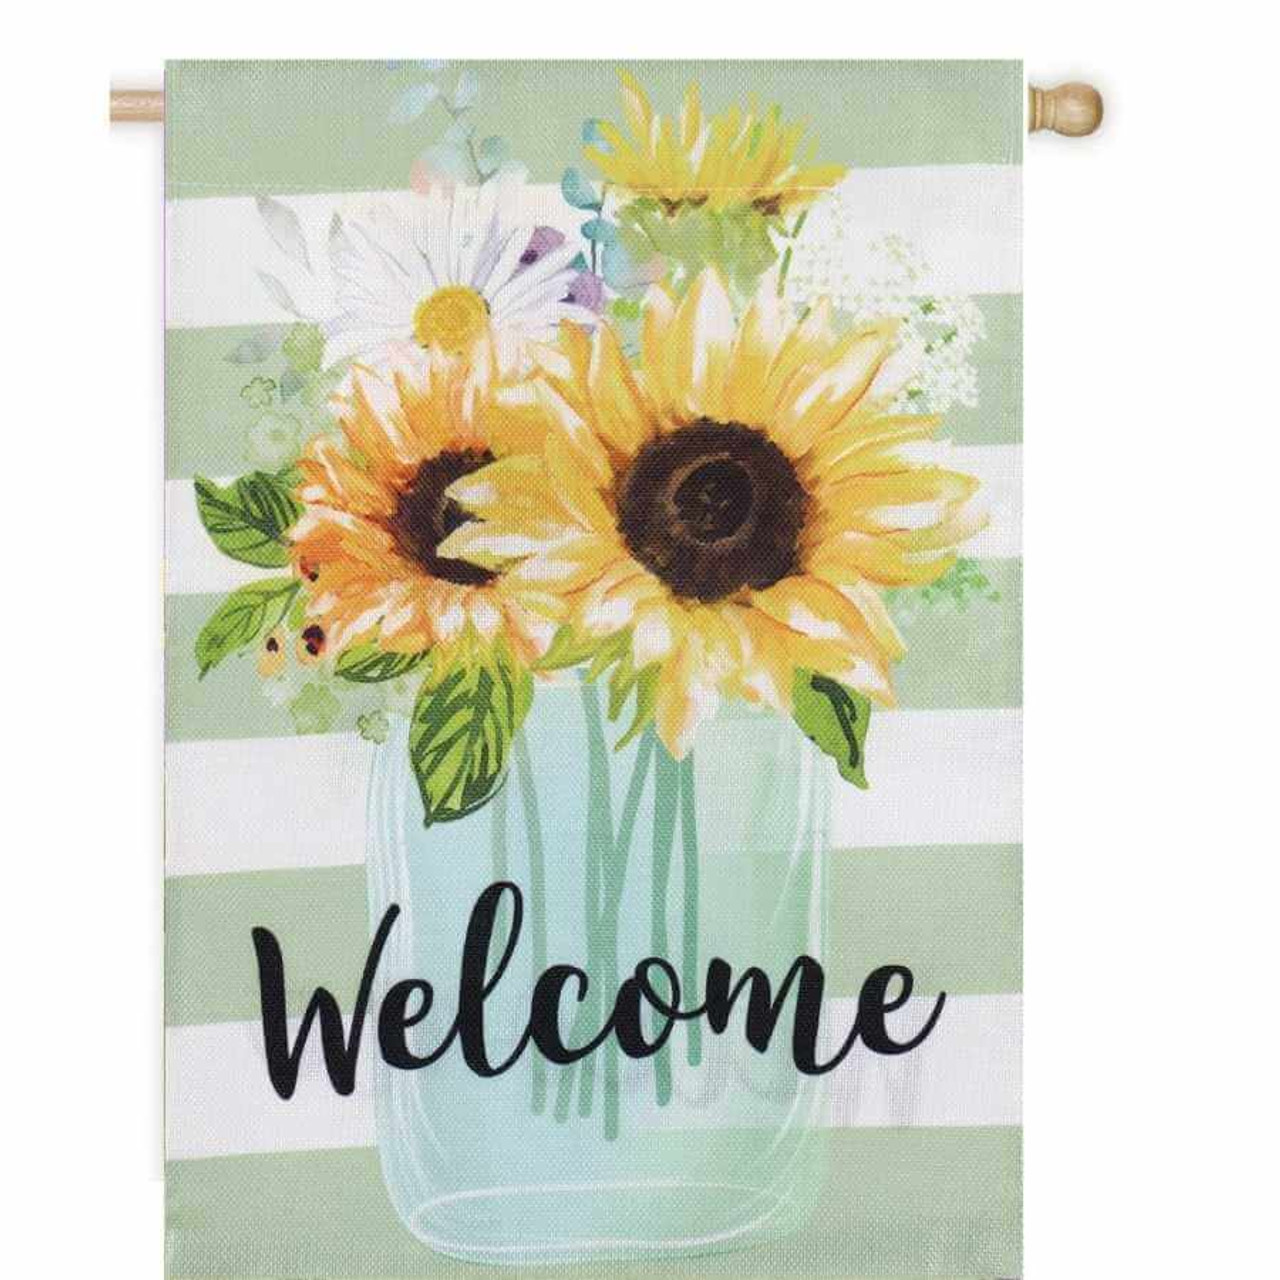 """Bright yellow sunflowers in a teal vase dominate this """"Welcome"""" flag.  Subtle green stripes in the background."""